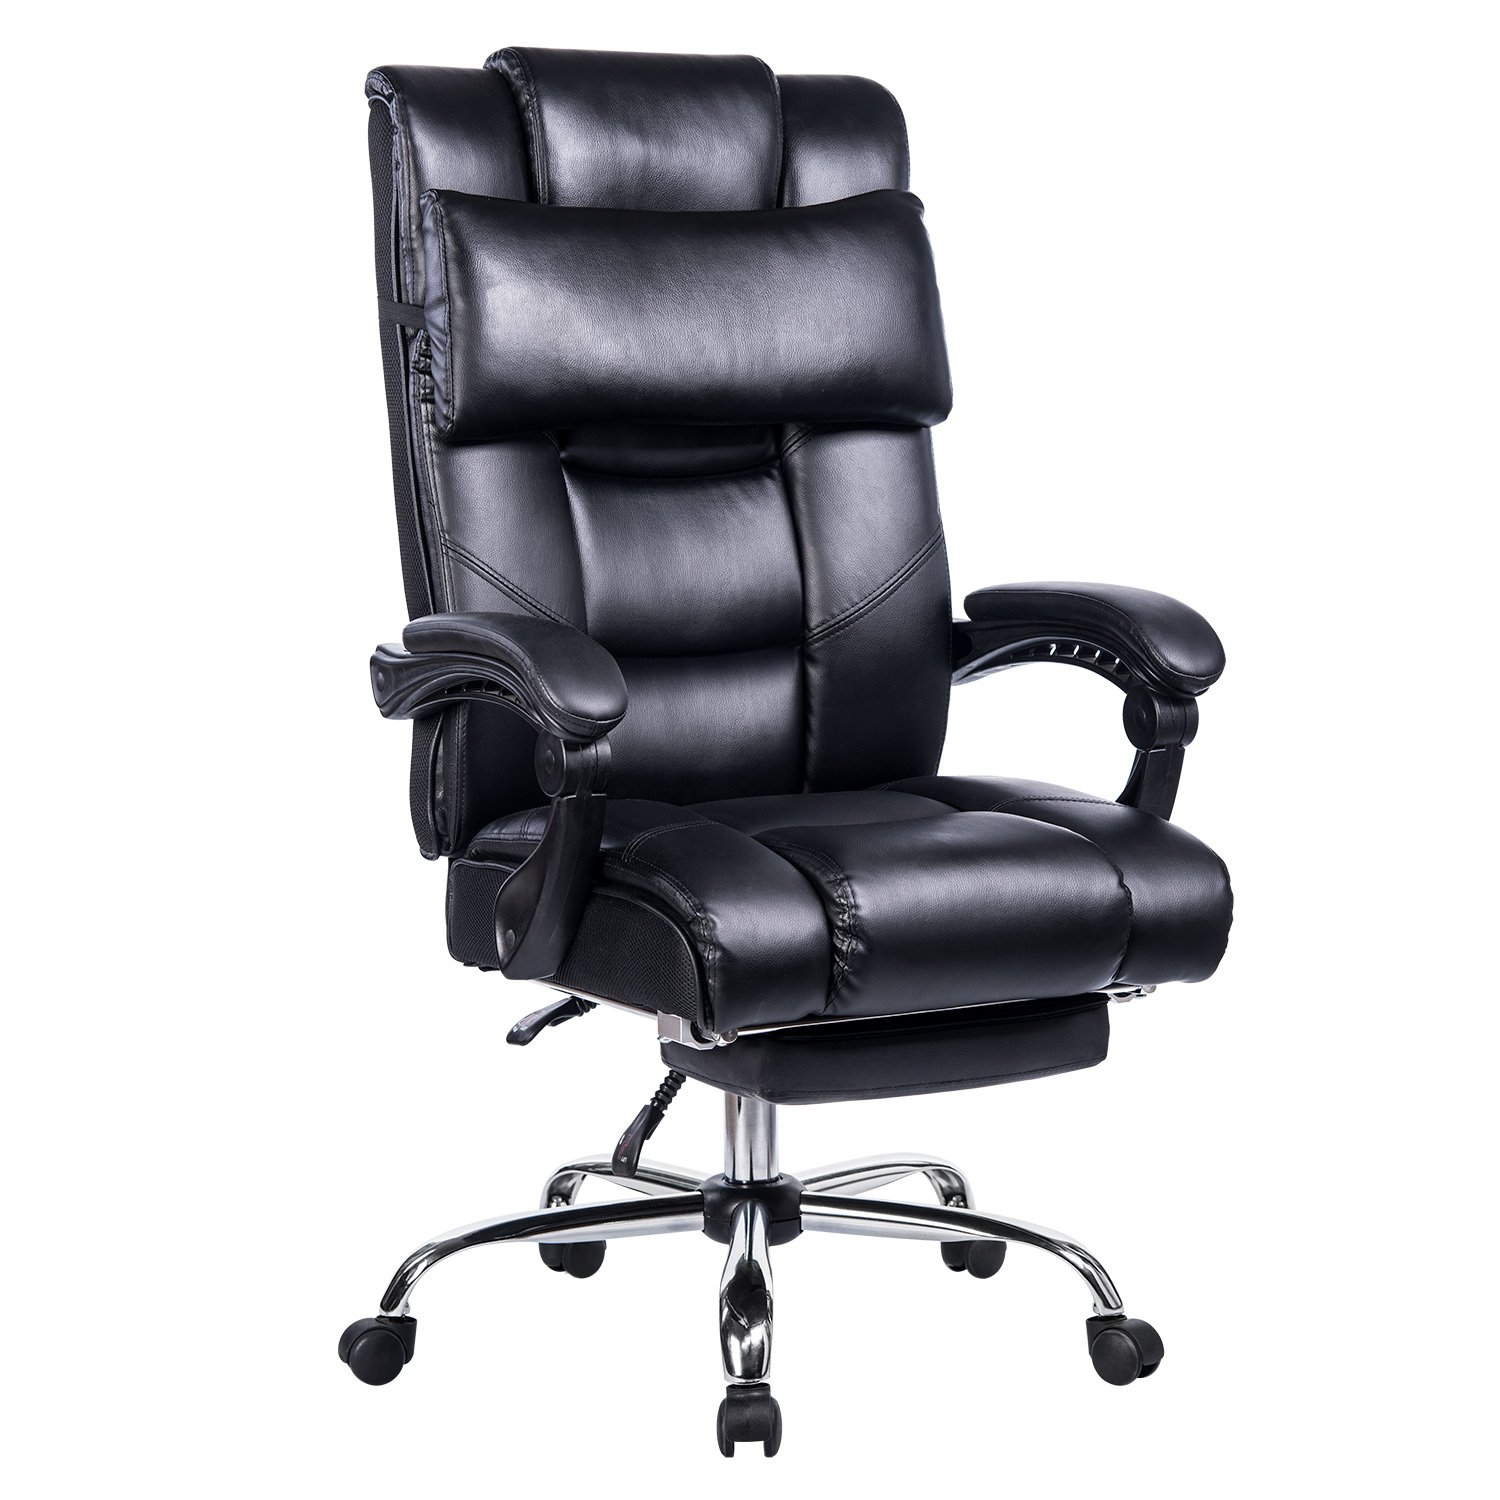 VANBOW Reclining Office Chair - High Back Bonded Leather Executive Chair with Retractable Footrest, Removable Pillow, Adjustable Angle Recline Lock System, Ergonomic Design, Black